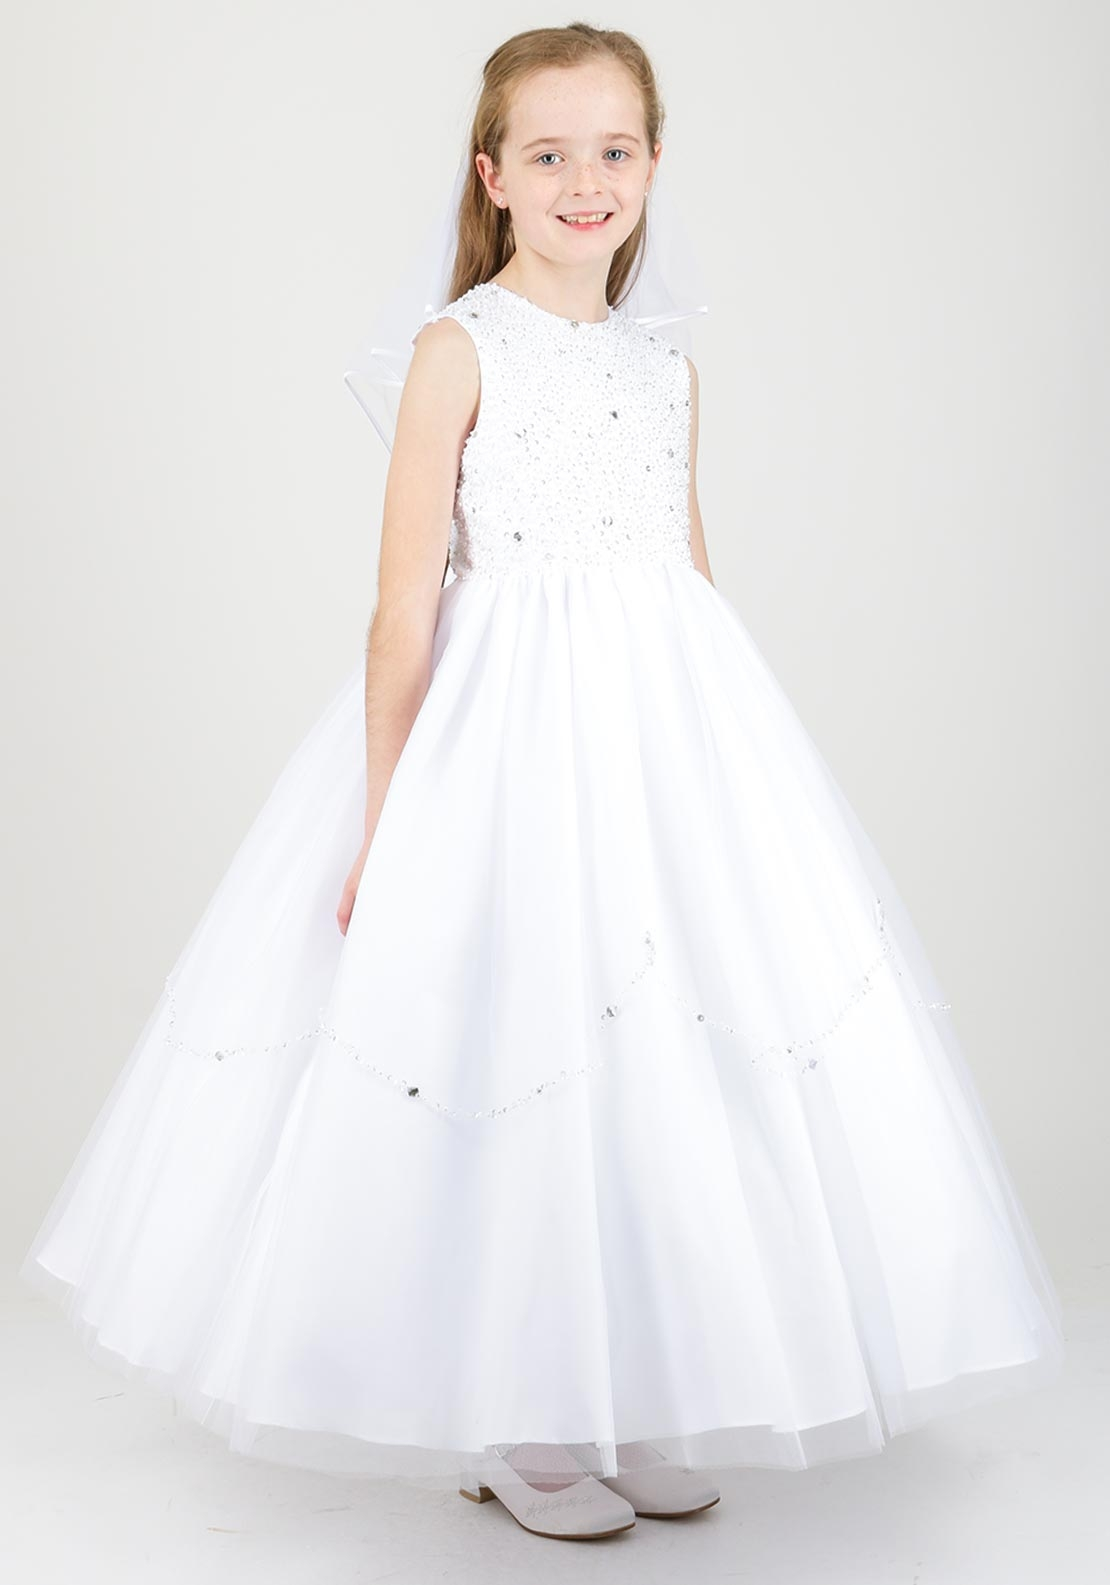 Little People Diamante Embellished Communion Dress, White